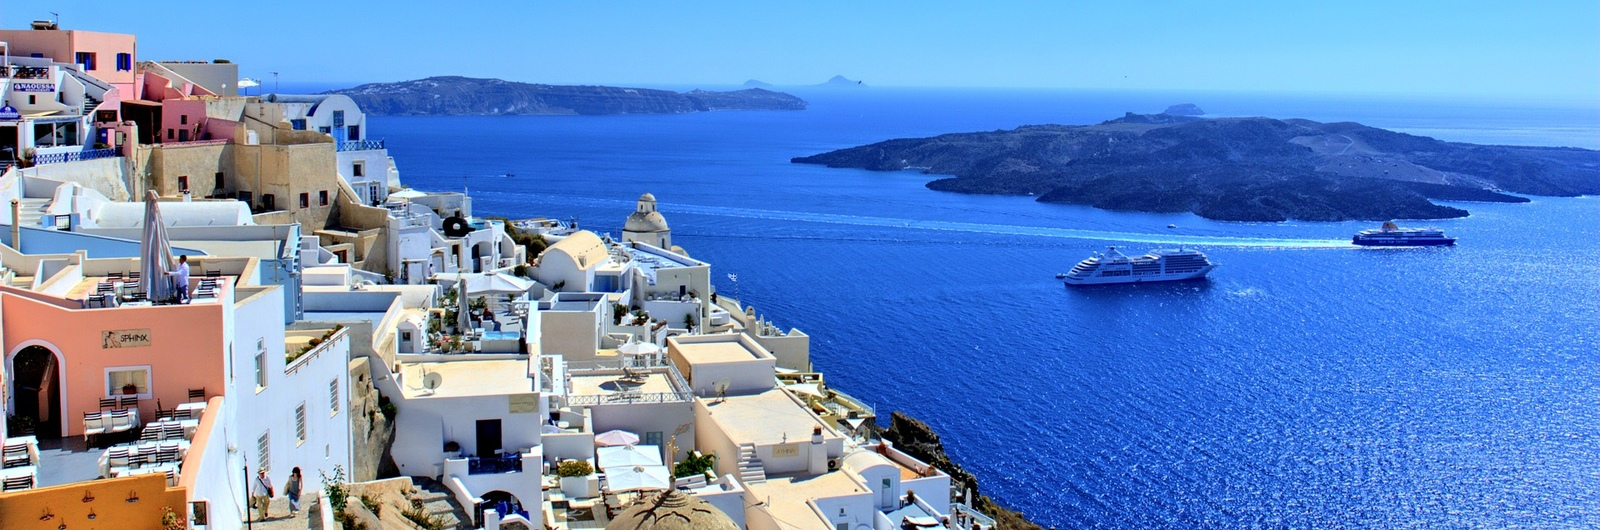 santorini city header